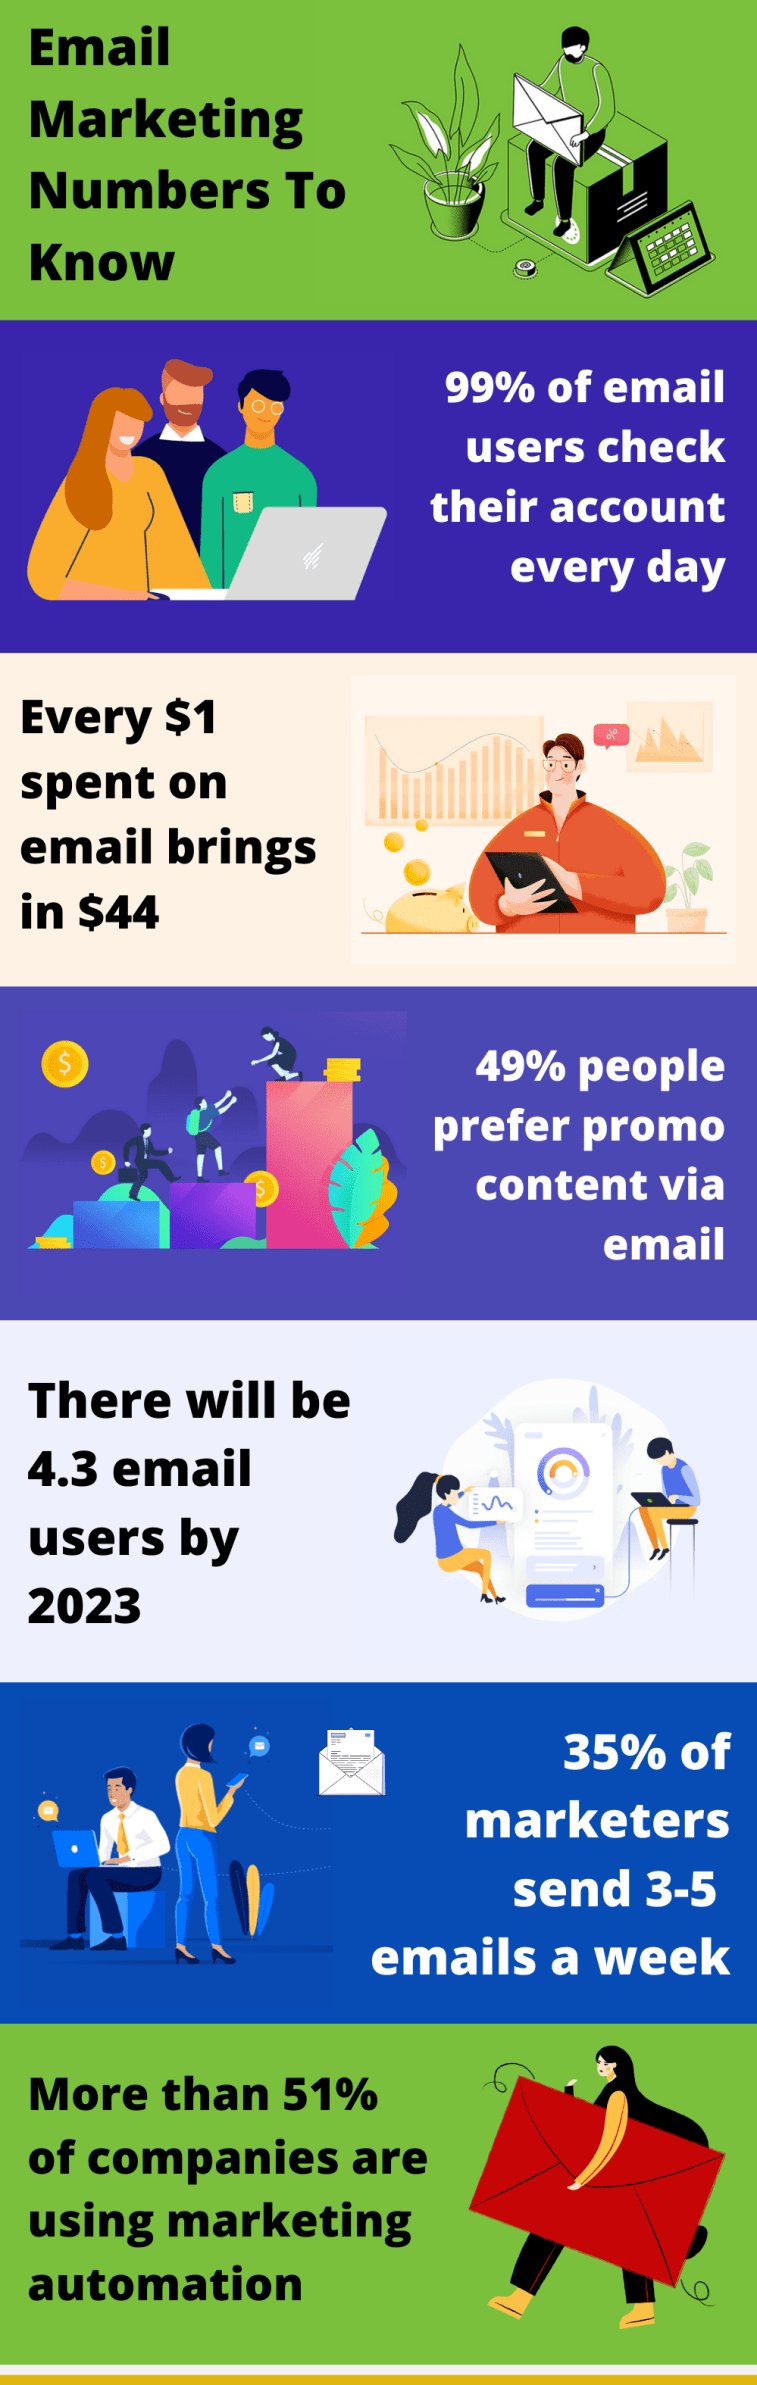 Is email marketing dead? Email marketing statistics